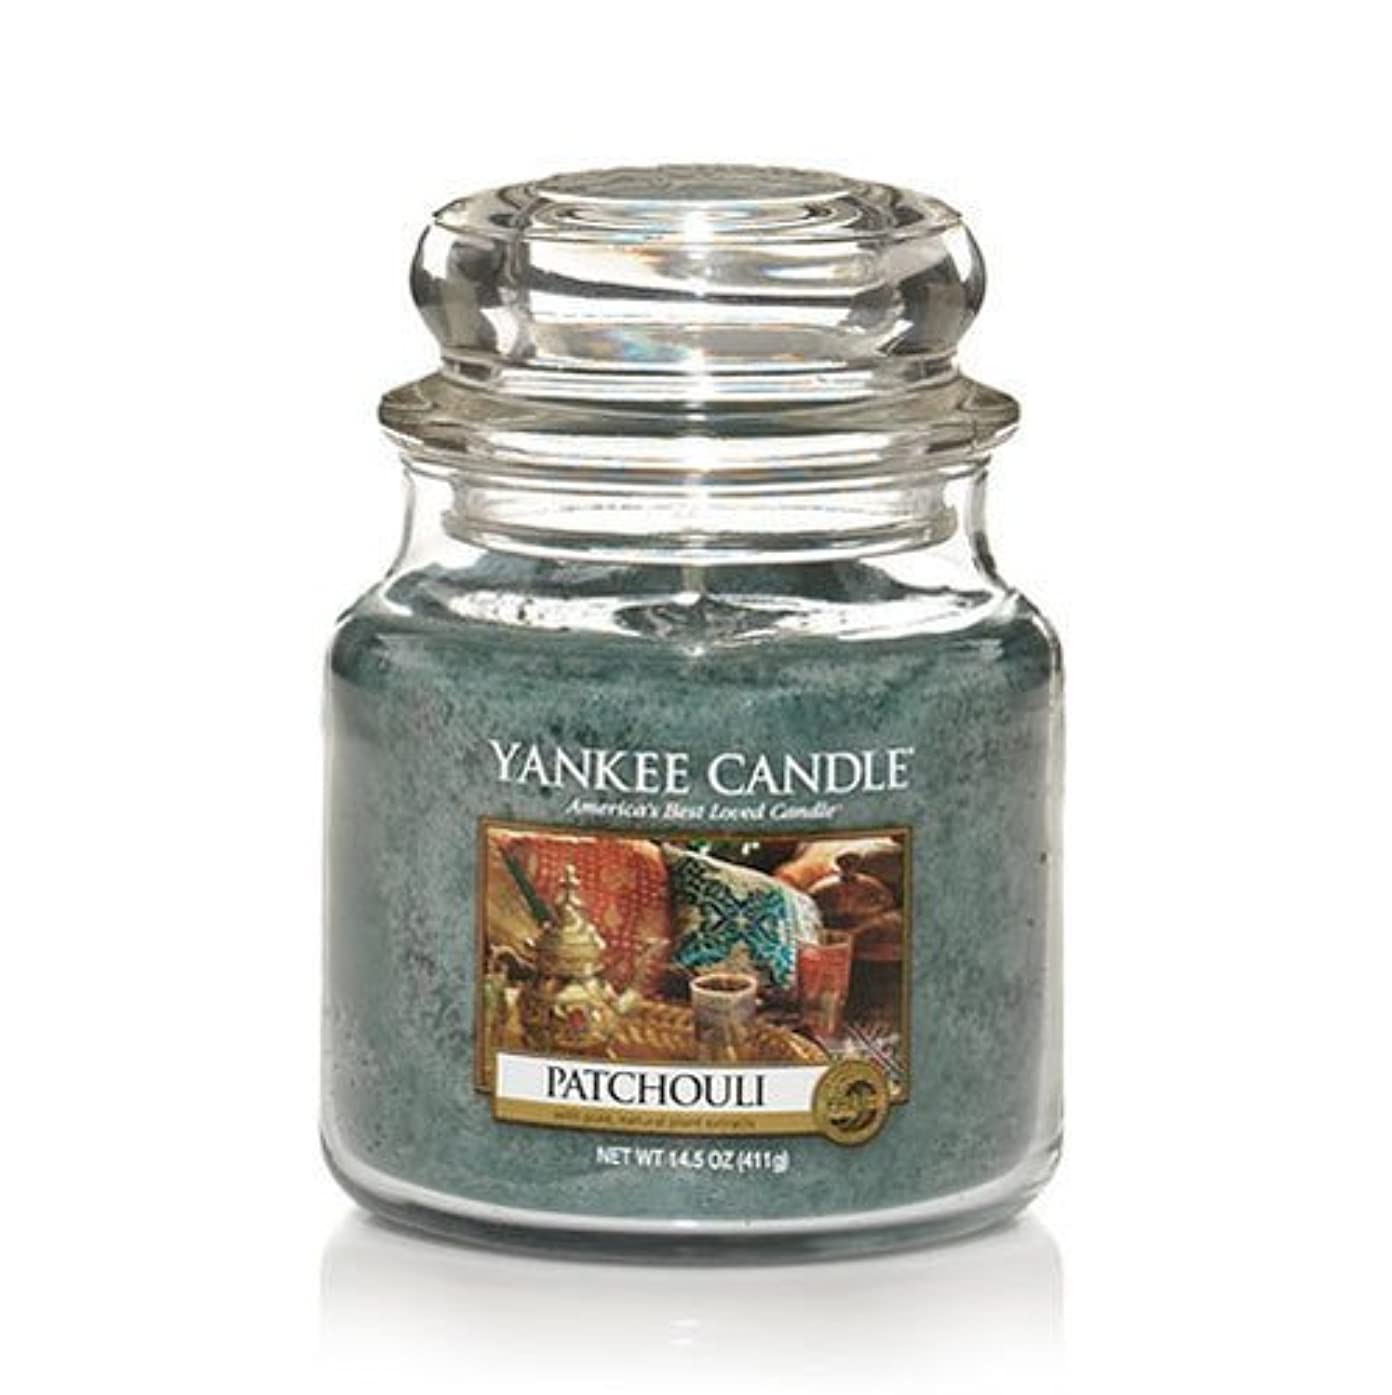 マイルド倍率グラマーYankee Candle Patchouli、新鮮な香り Medium Jar Candles 114130-YC